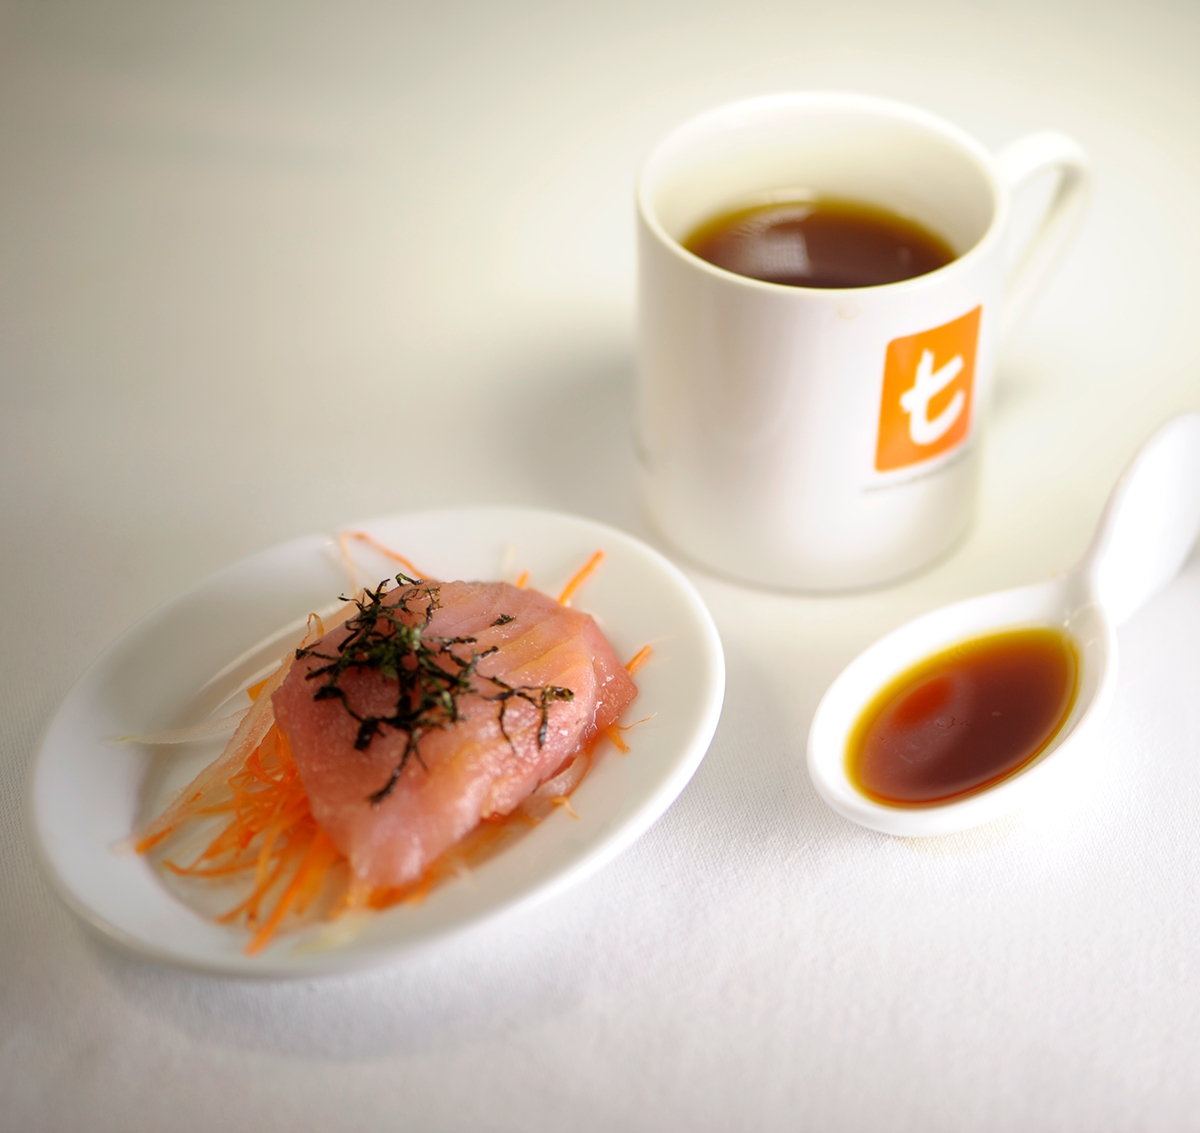 Lively Lime & Orange with Sashimi in Ponzu sauce